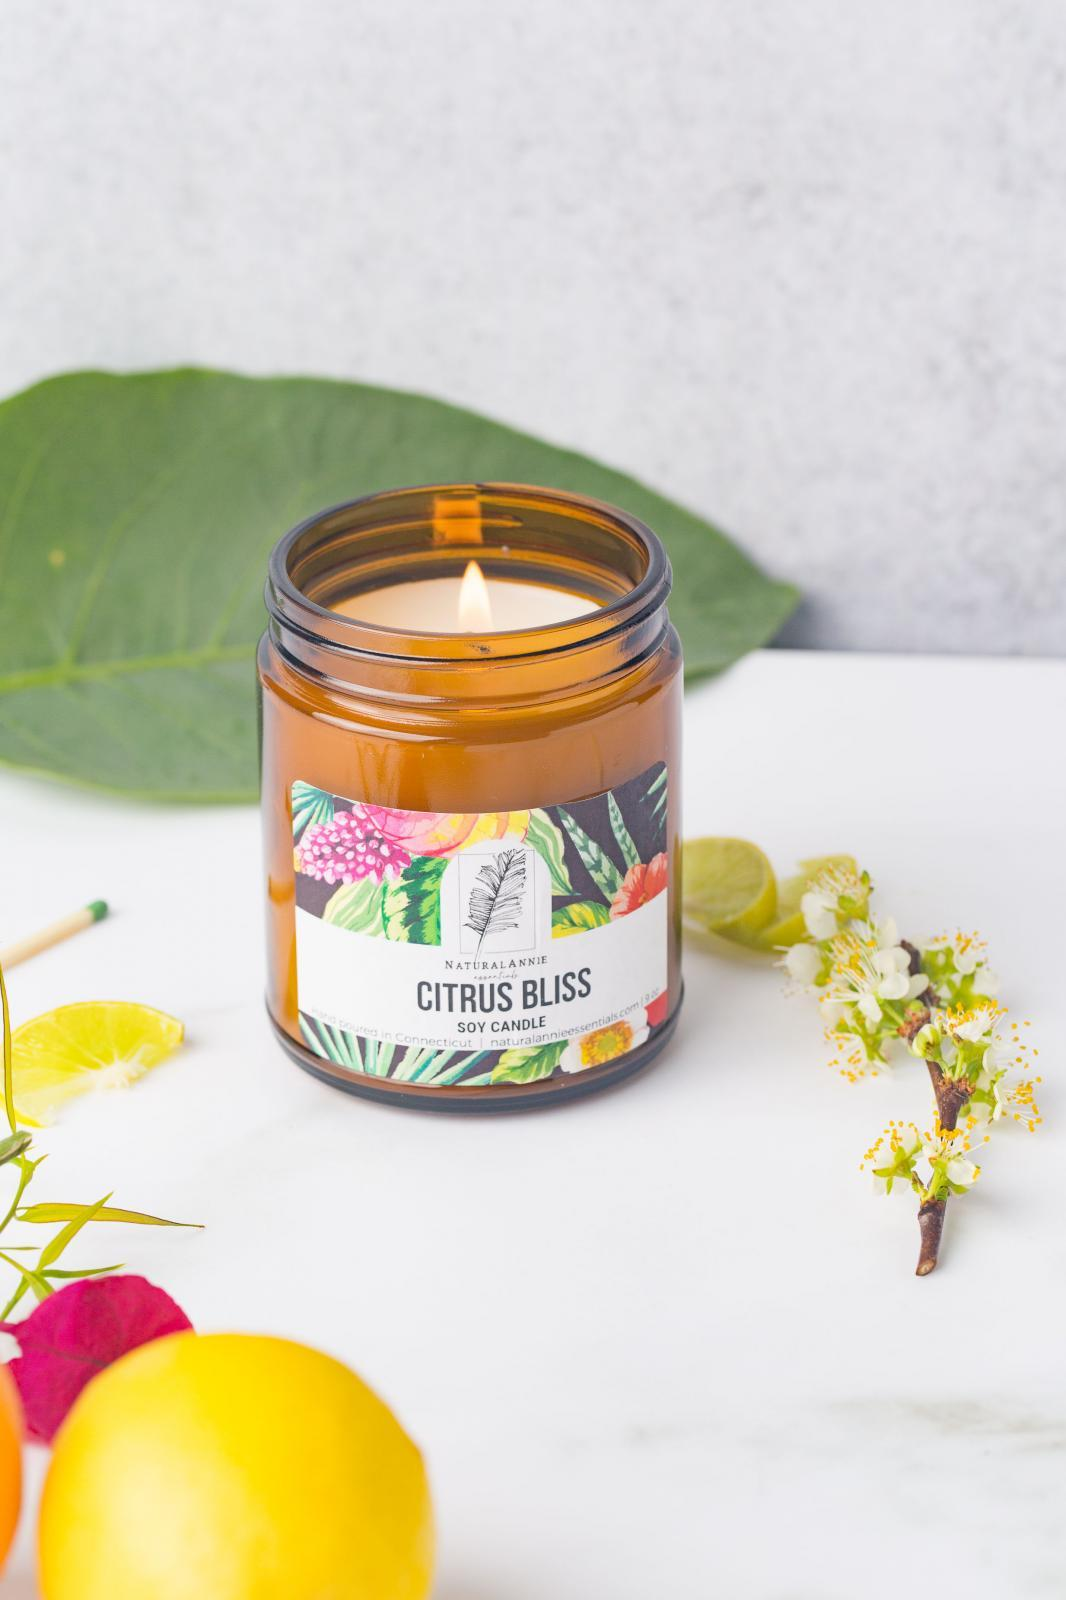 Citrus Bliss Soy Candle